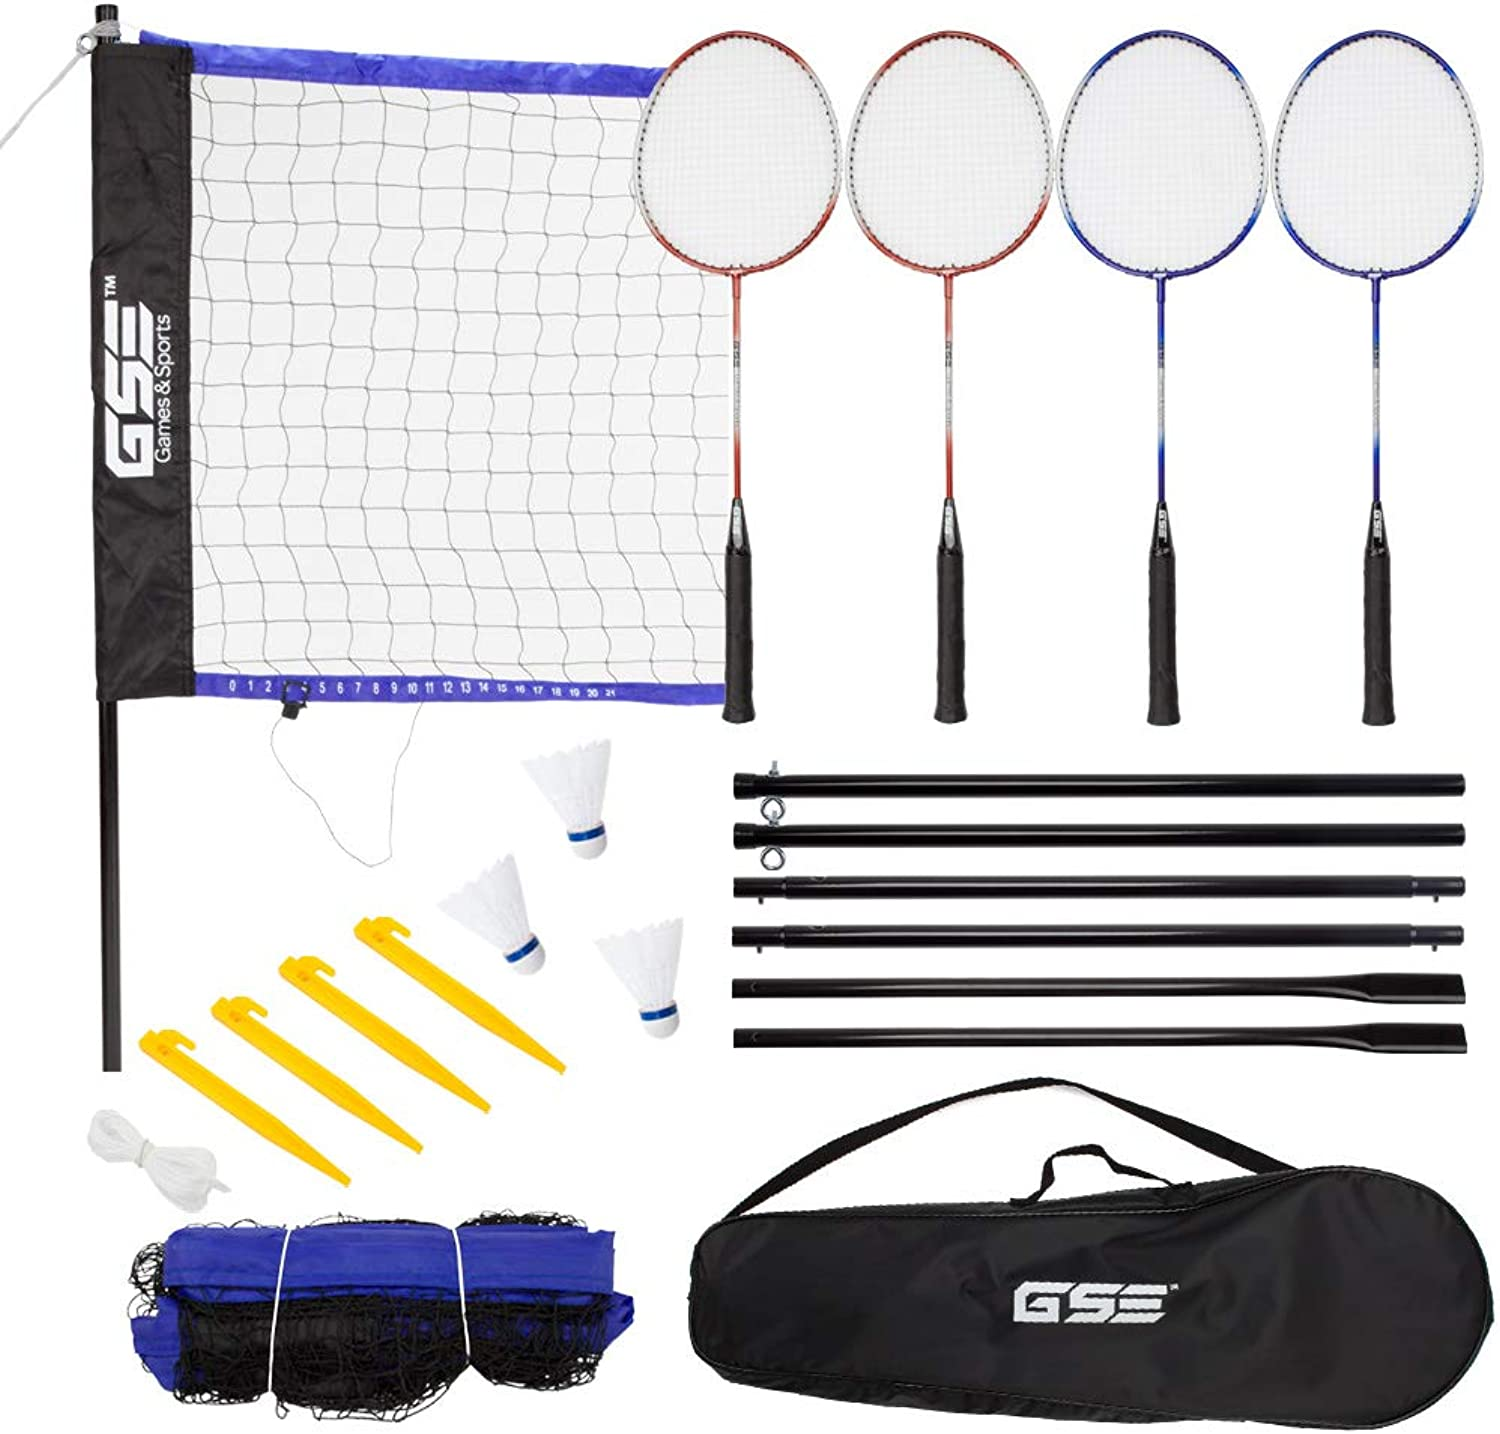 GSE Games & Sports Expert Deluxe Outdoor Backyard Beach Game Set (Badminton Volleyball)